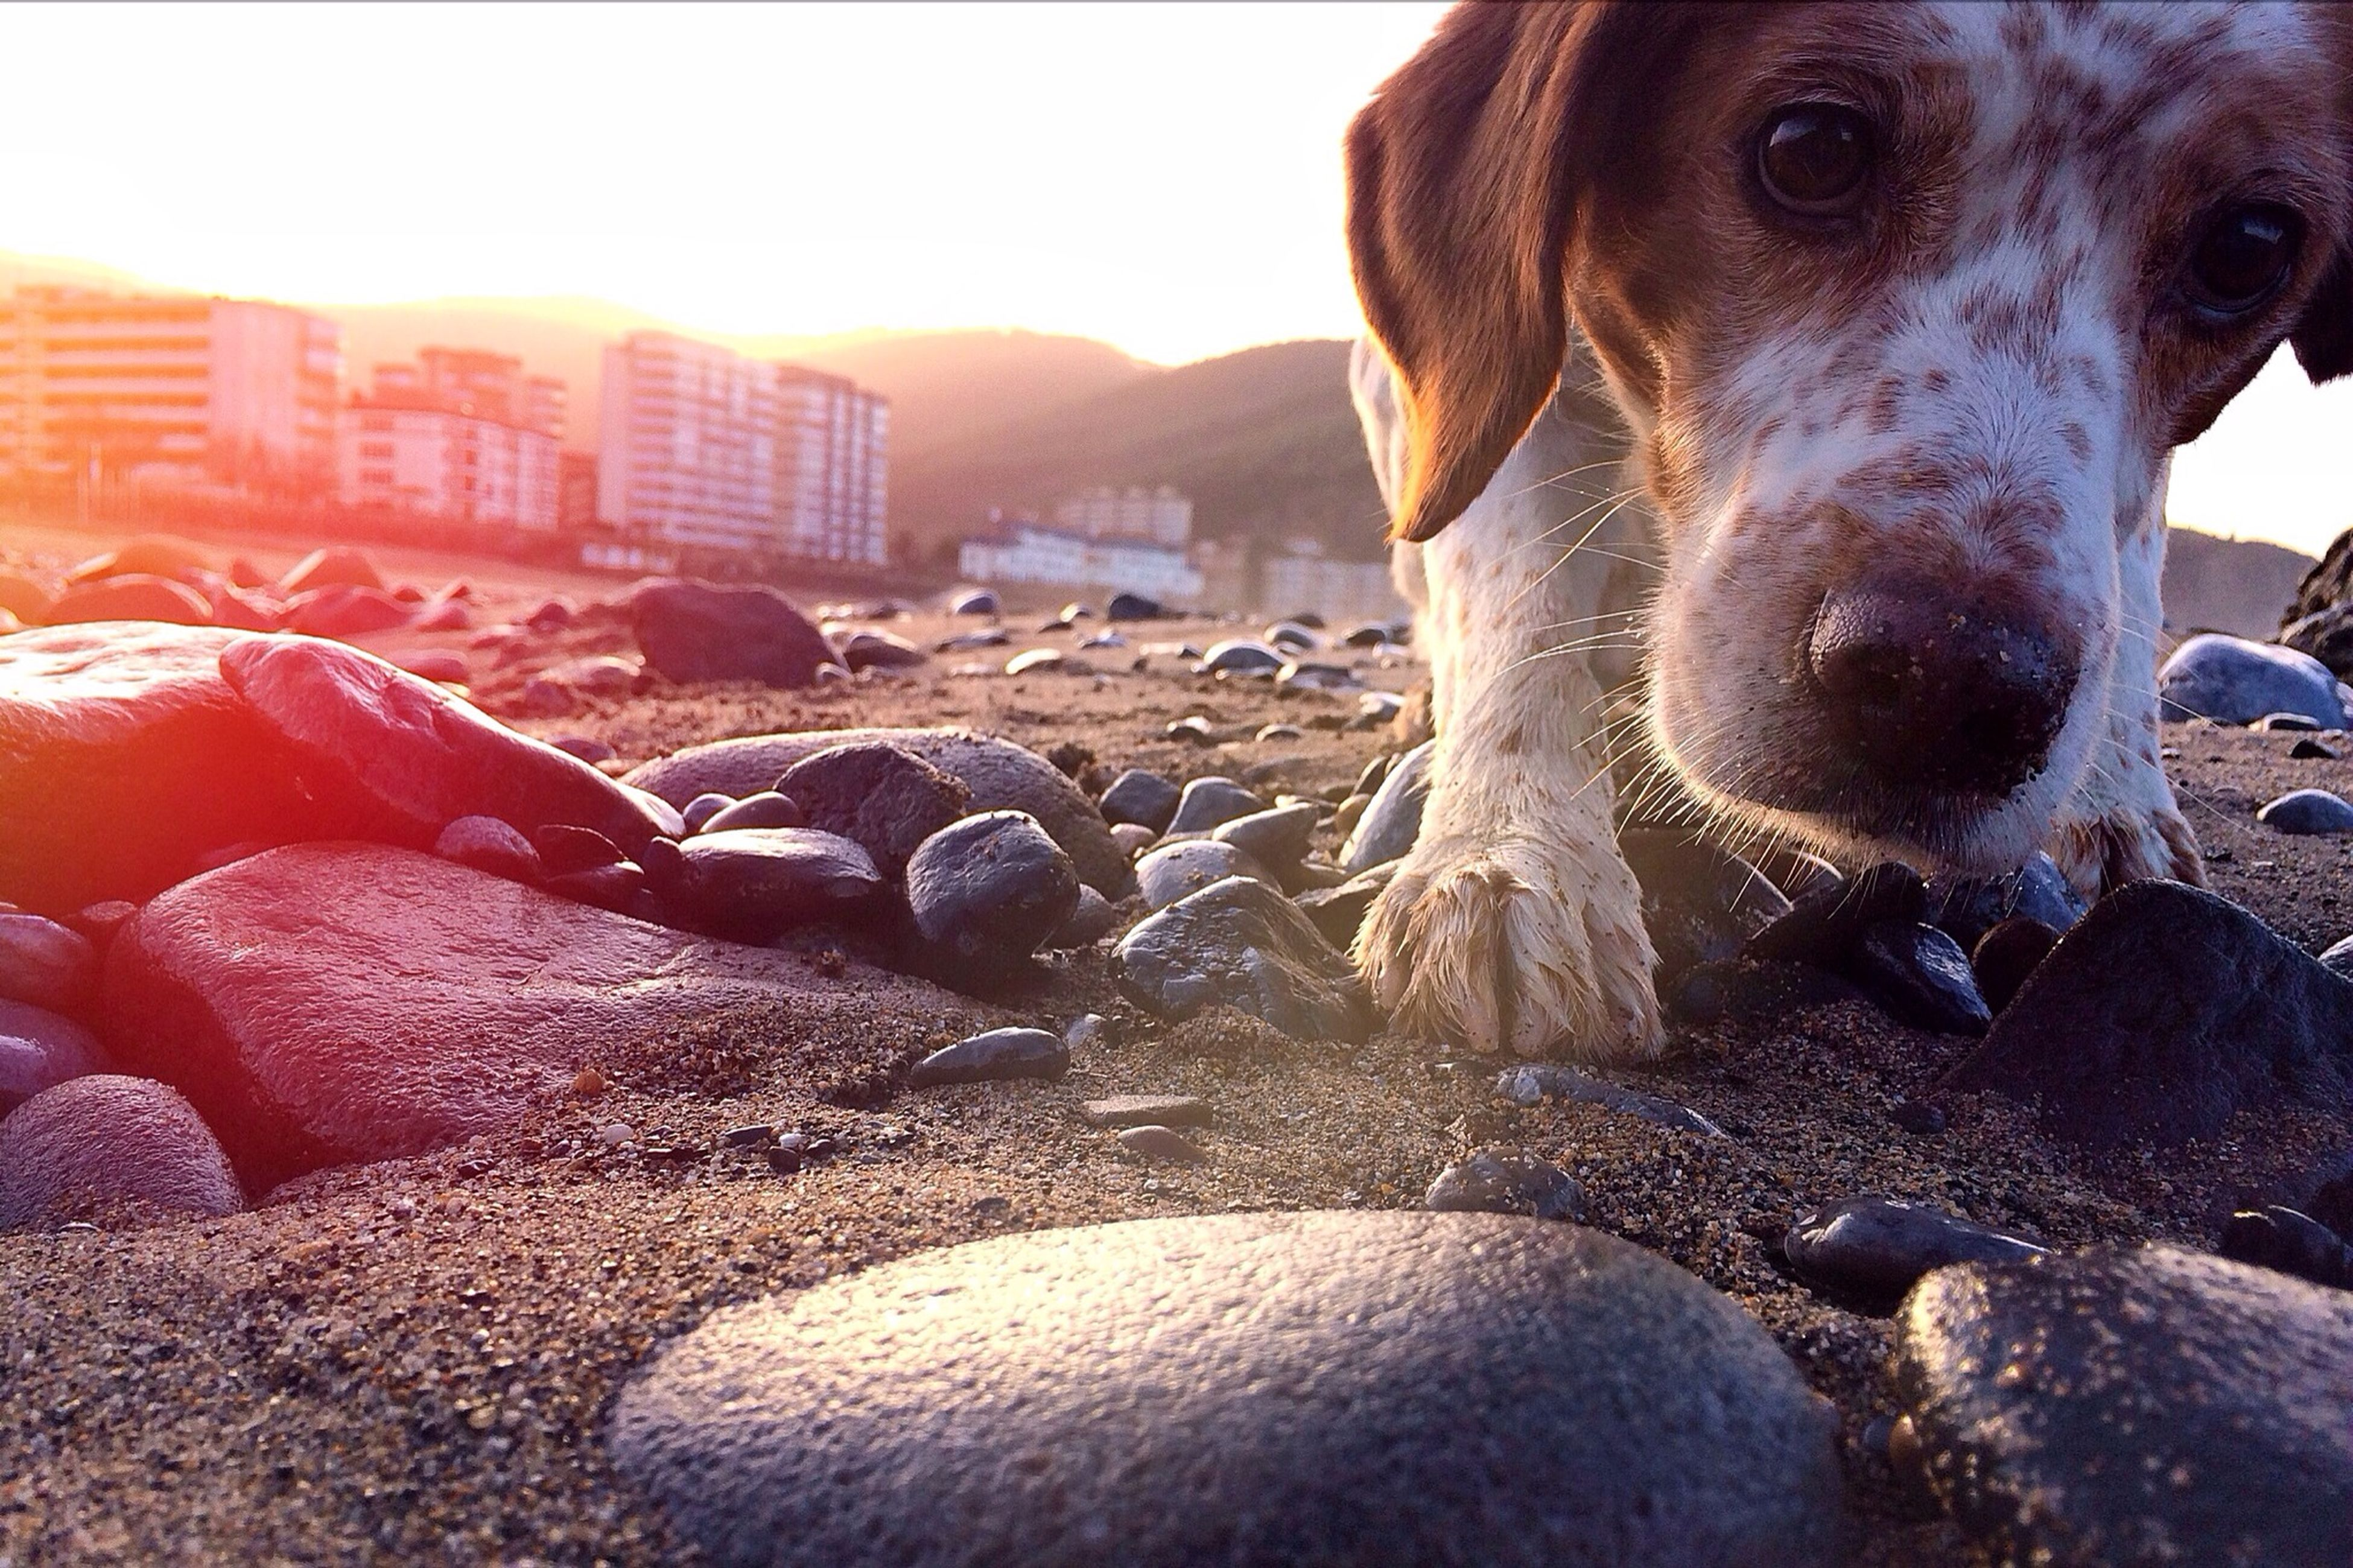 domestic animals, mammal, animal themes, dog, pets, sunlight, one animal, close-up, day, outdoors, clear sky, no people, sky, part of, sunny, built structure, beach, nature, focus on foreground, sunbeam